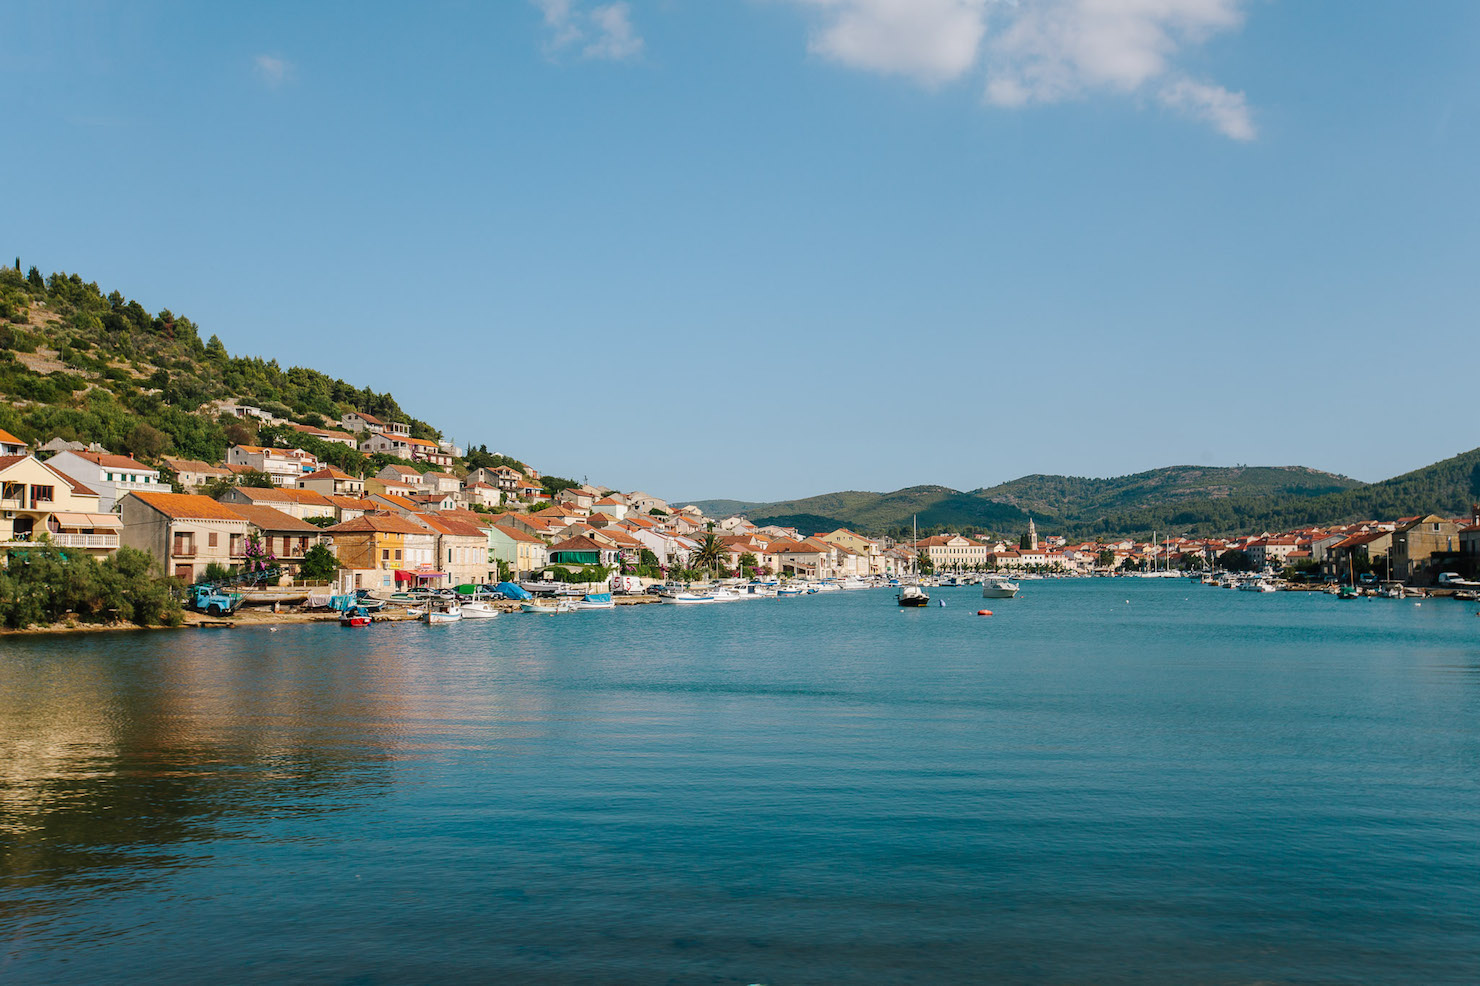 Korcula Town To Stari Grad With Medsailors Living In